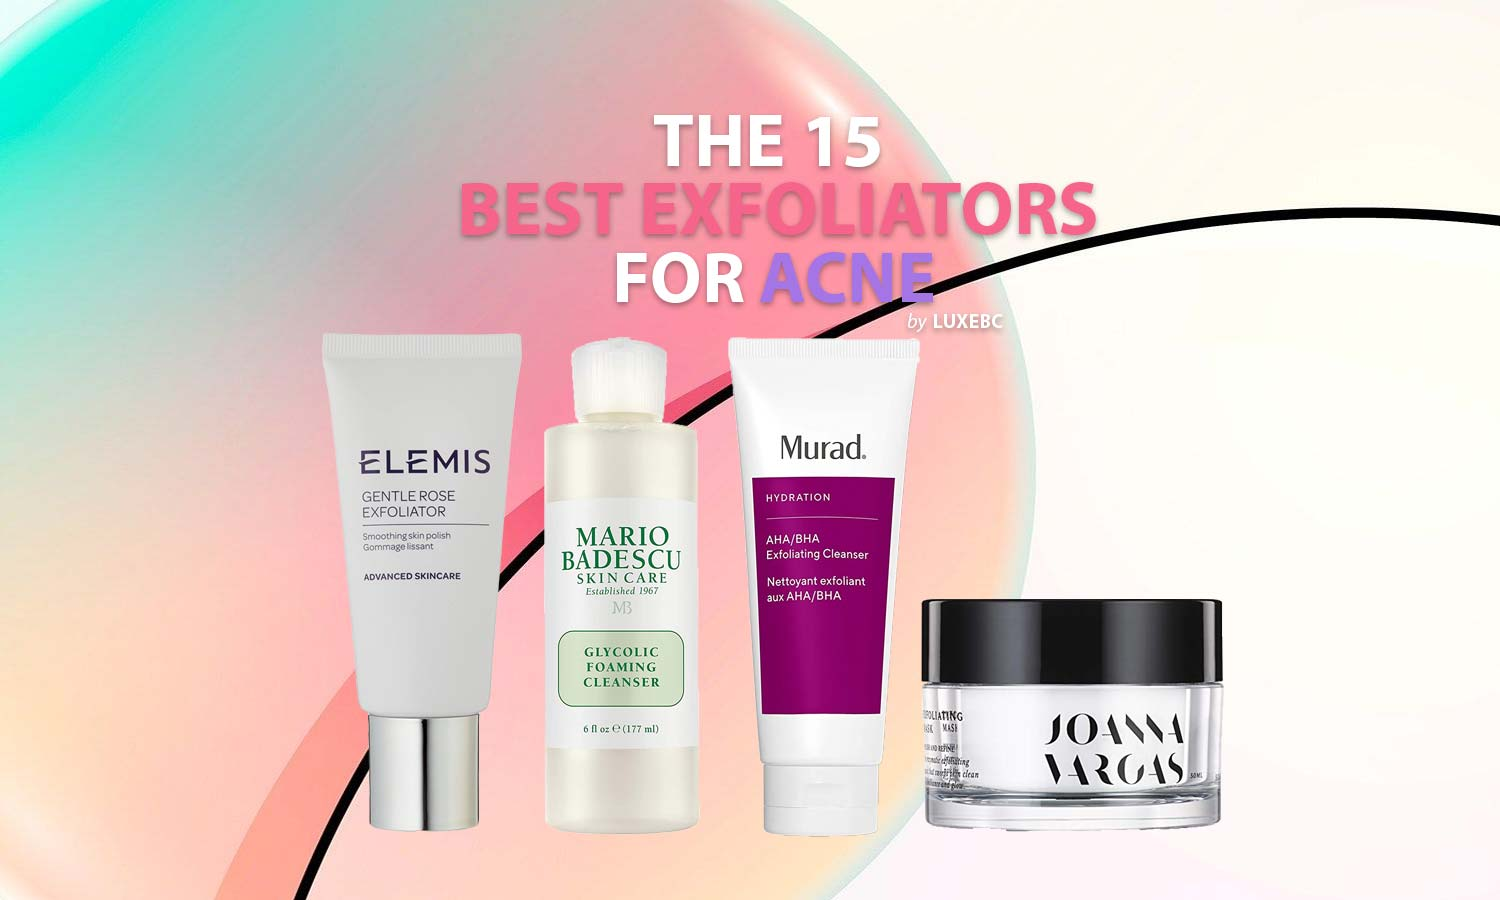 Best exfoliators for acne